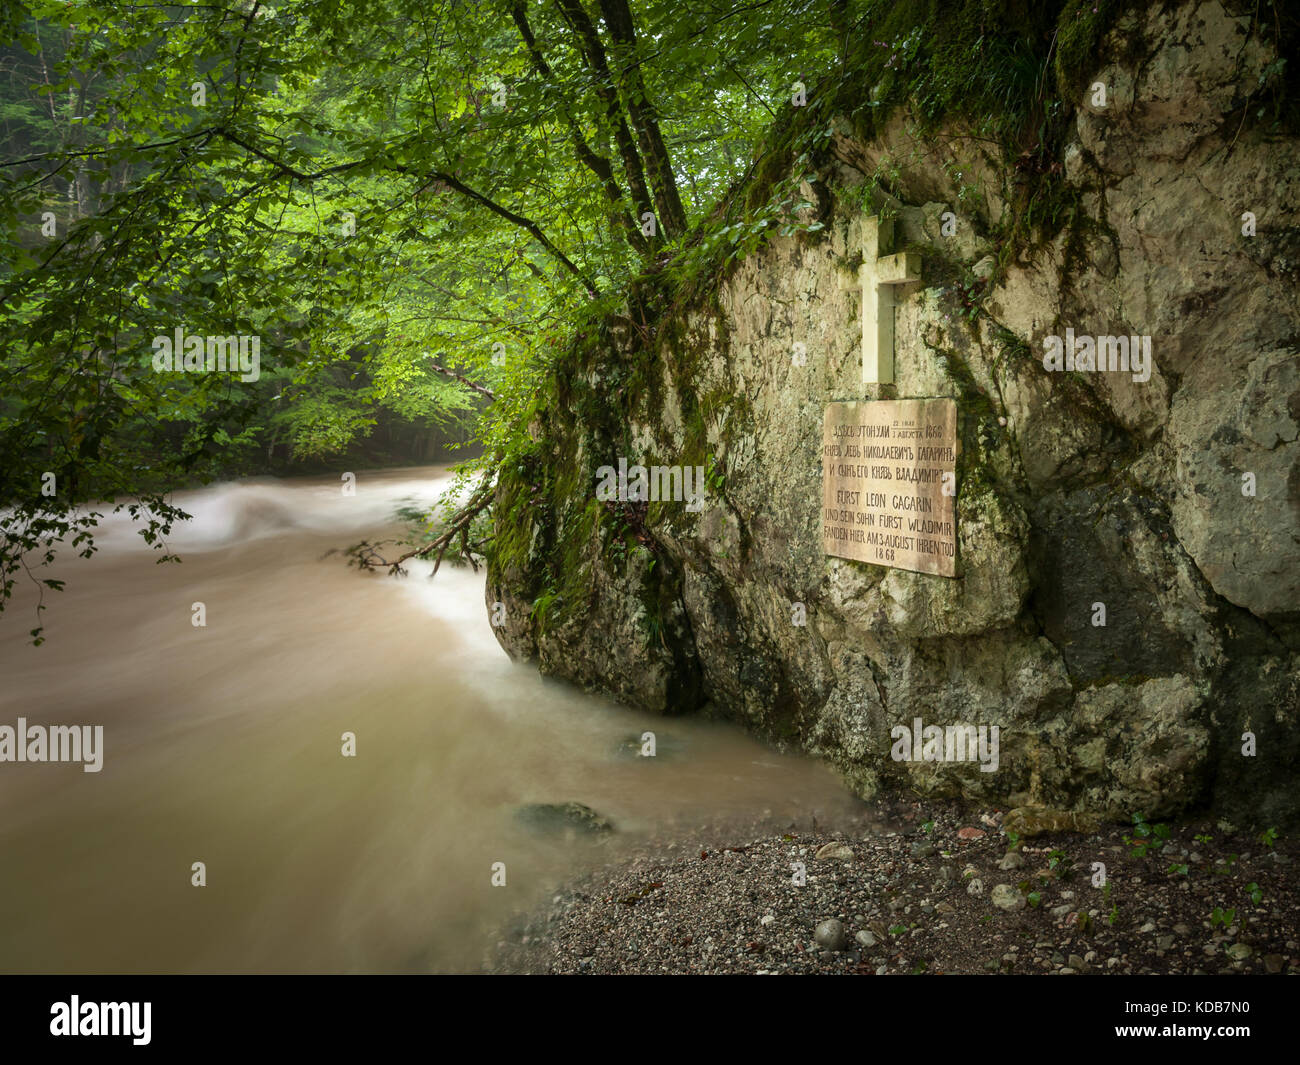 Memorial plaque of Leo Gagrin and his son Wladimir in Rettenbach-Klamm (Bad Ischl, Austria) - Stock Image